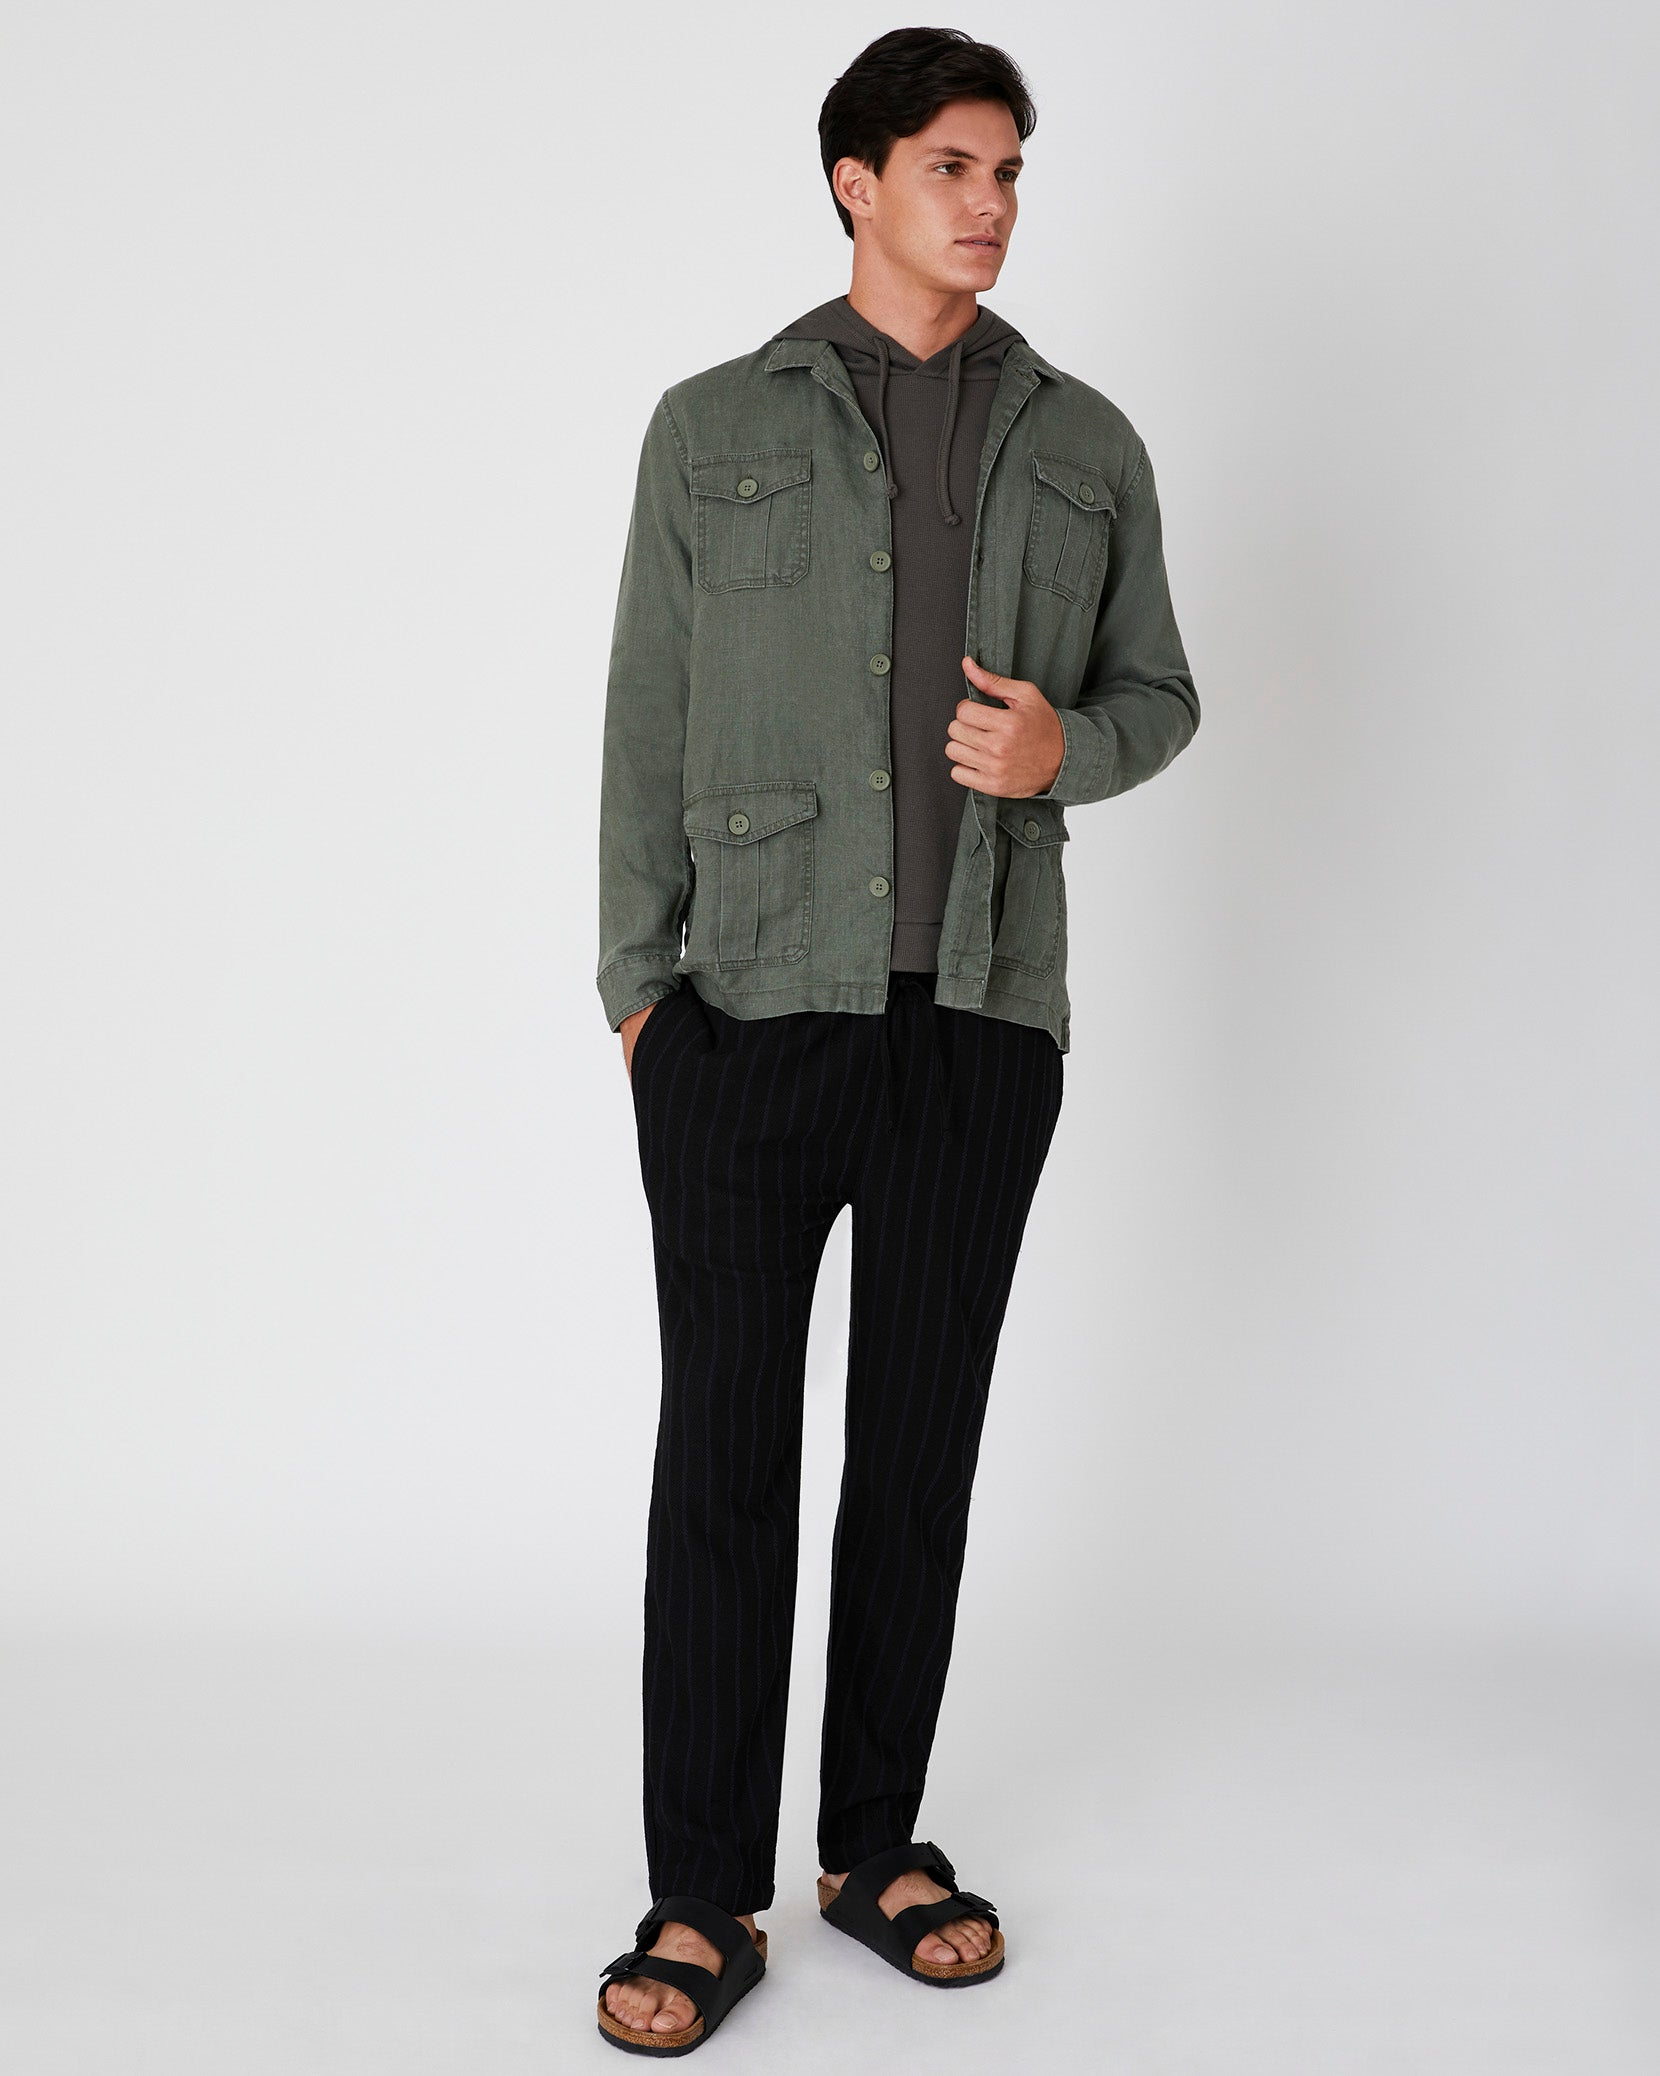 Linen Safari Jacket in Deep Sage - 8 - Onia